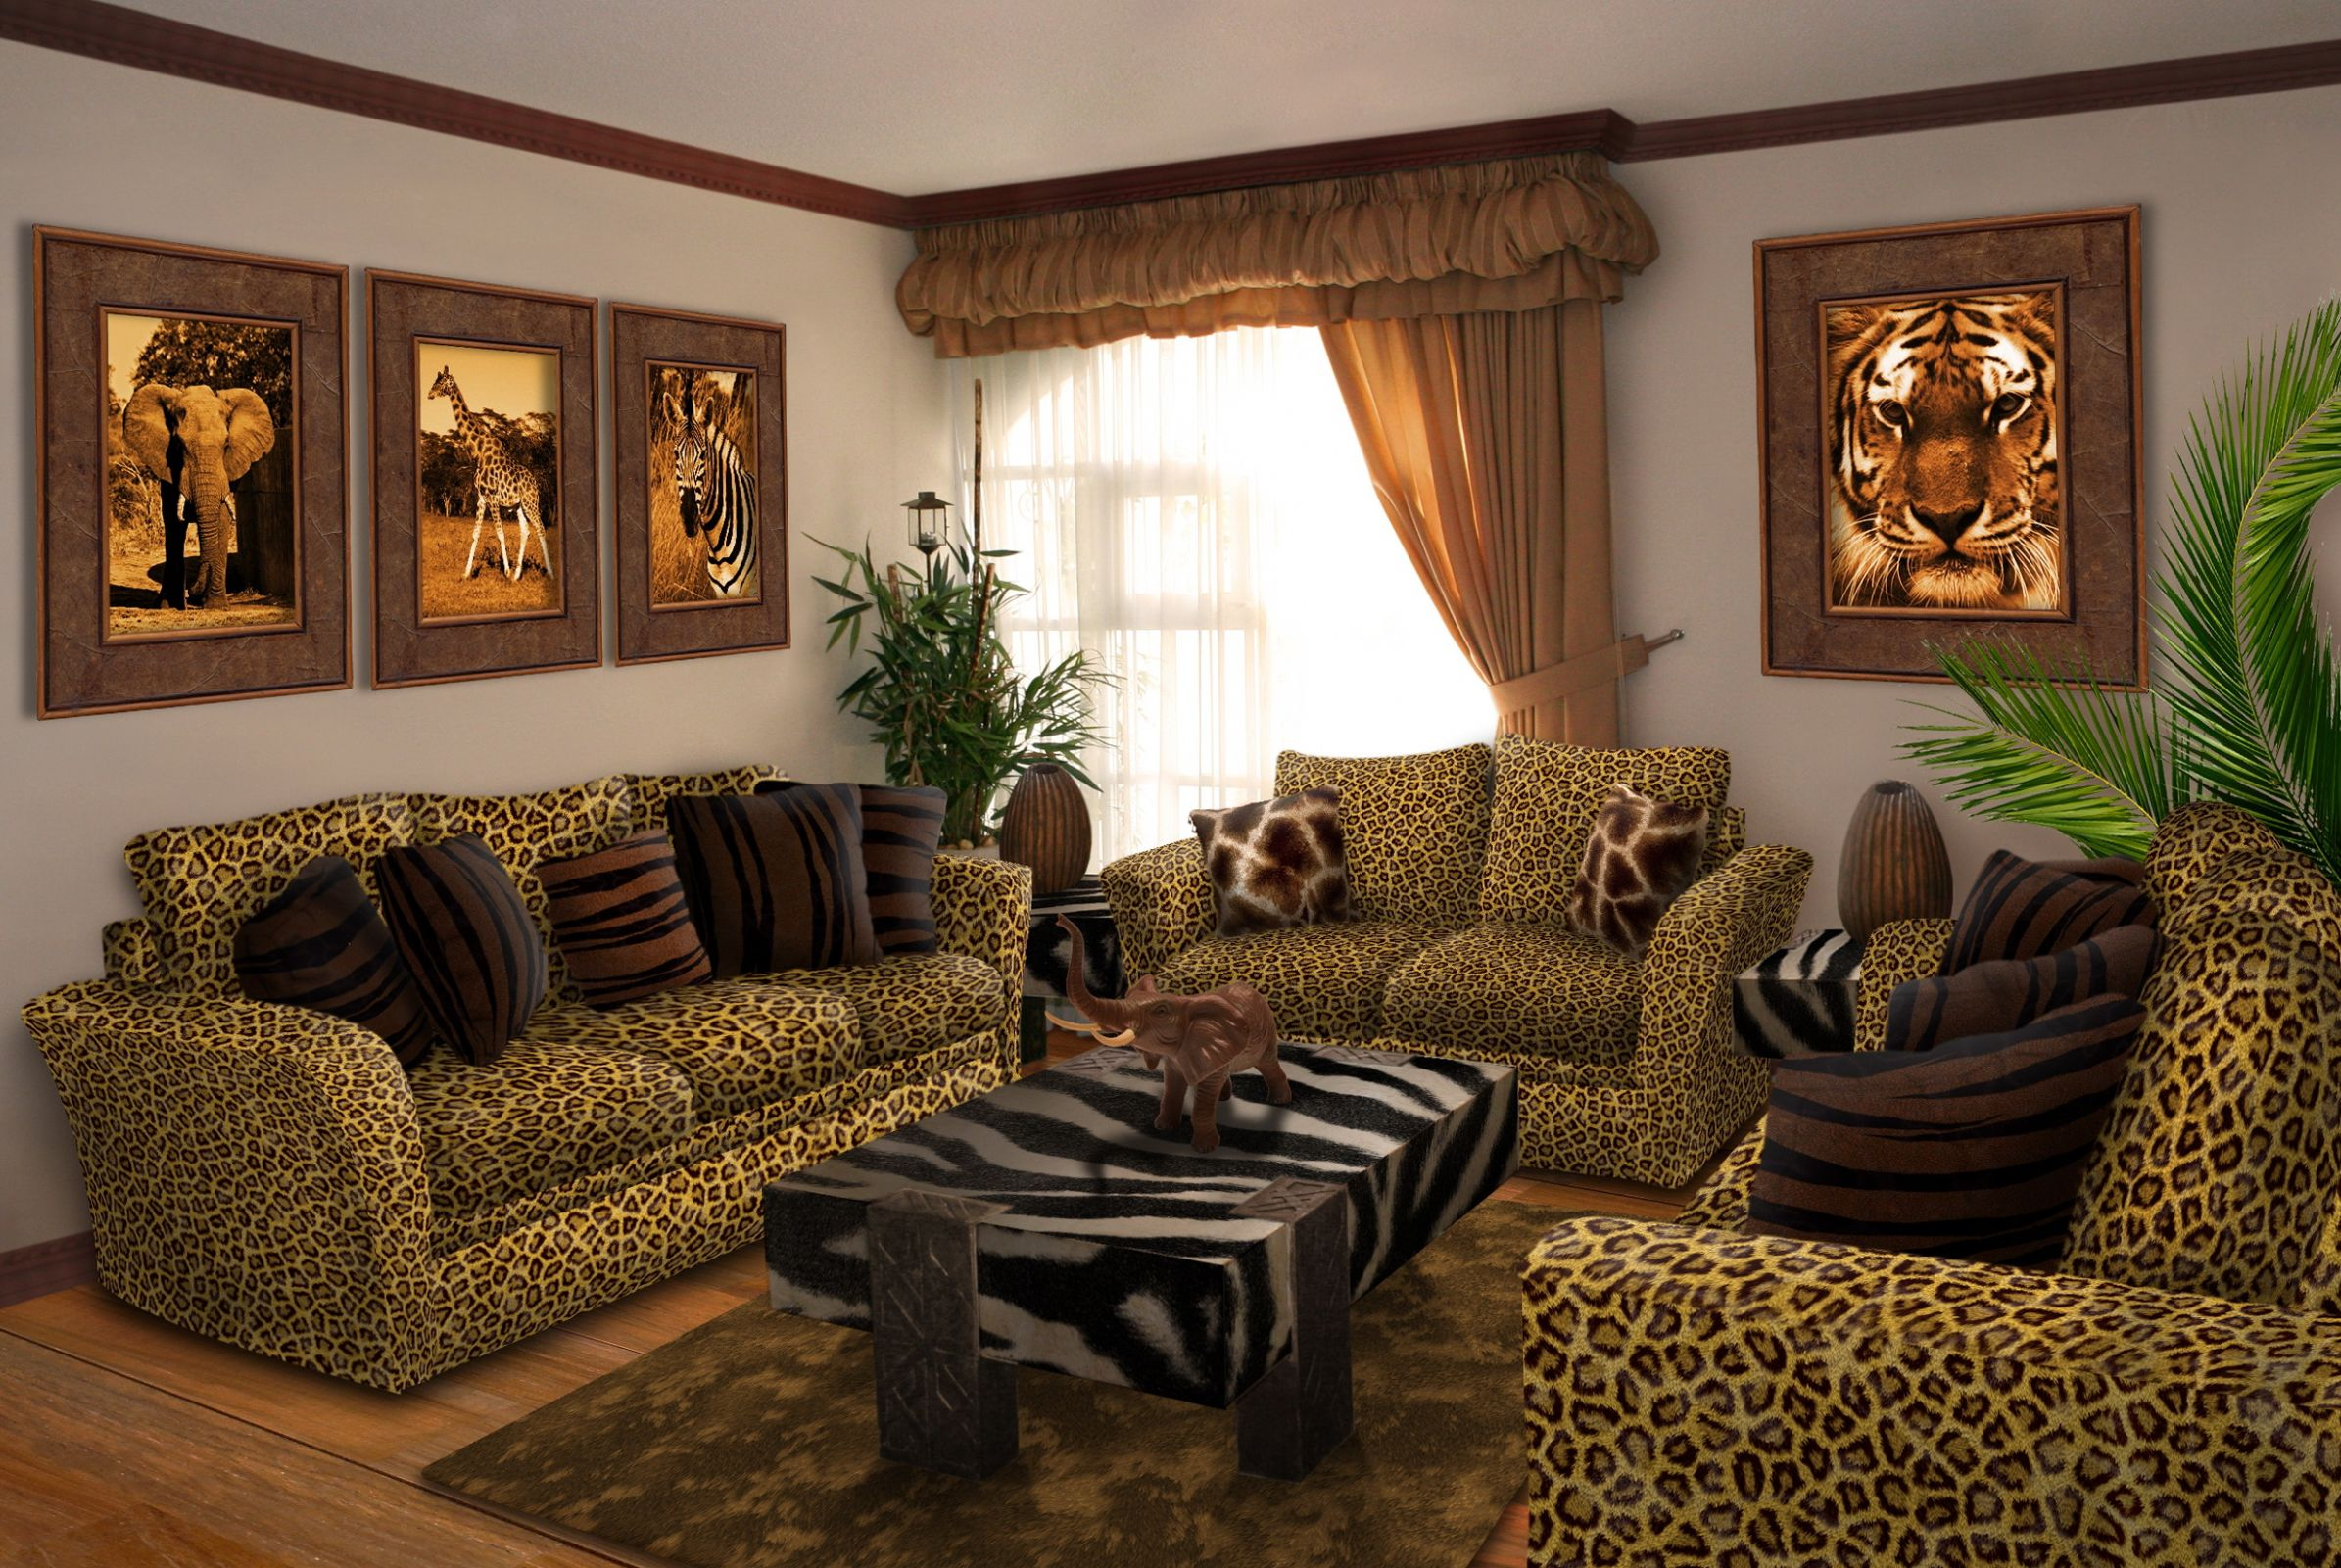 12 African Living Room Ideas by Digital Interiors - Digital Interiors - living room ideas kenya